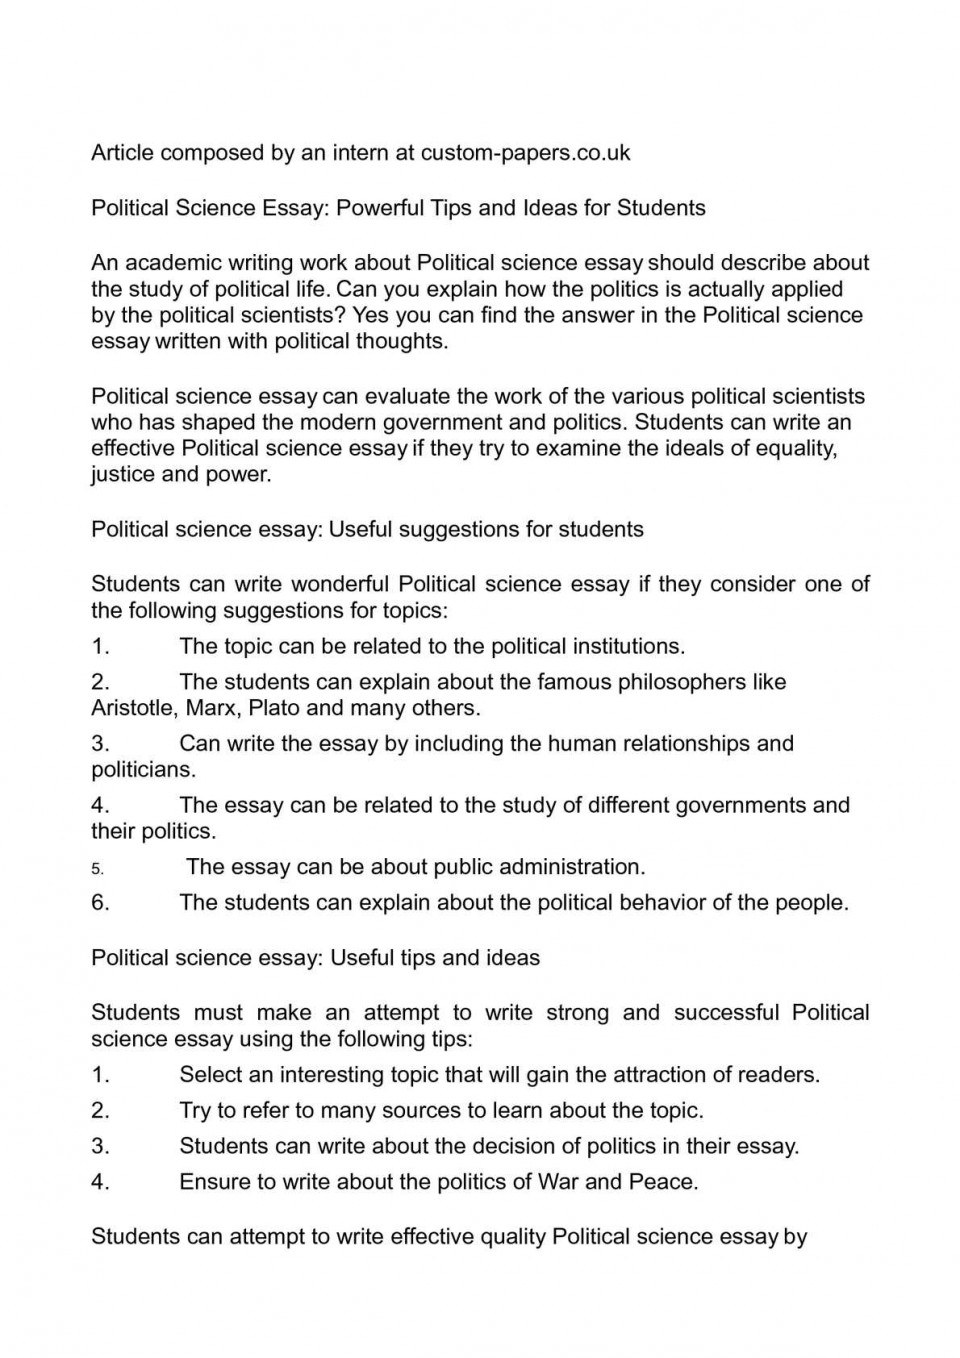 023 Research Paper P1 Political Science Essay Archaicawful Topics 2014 101 960